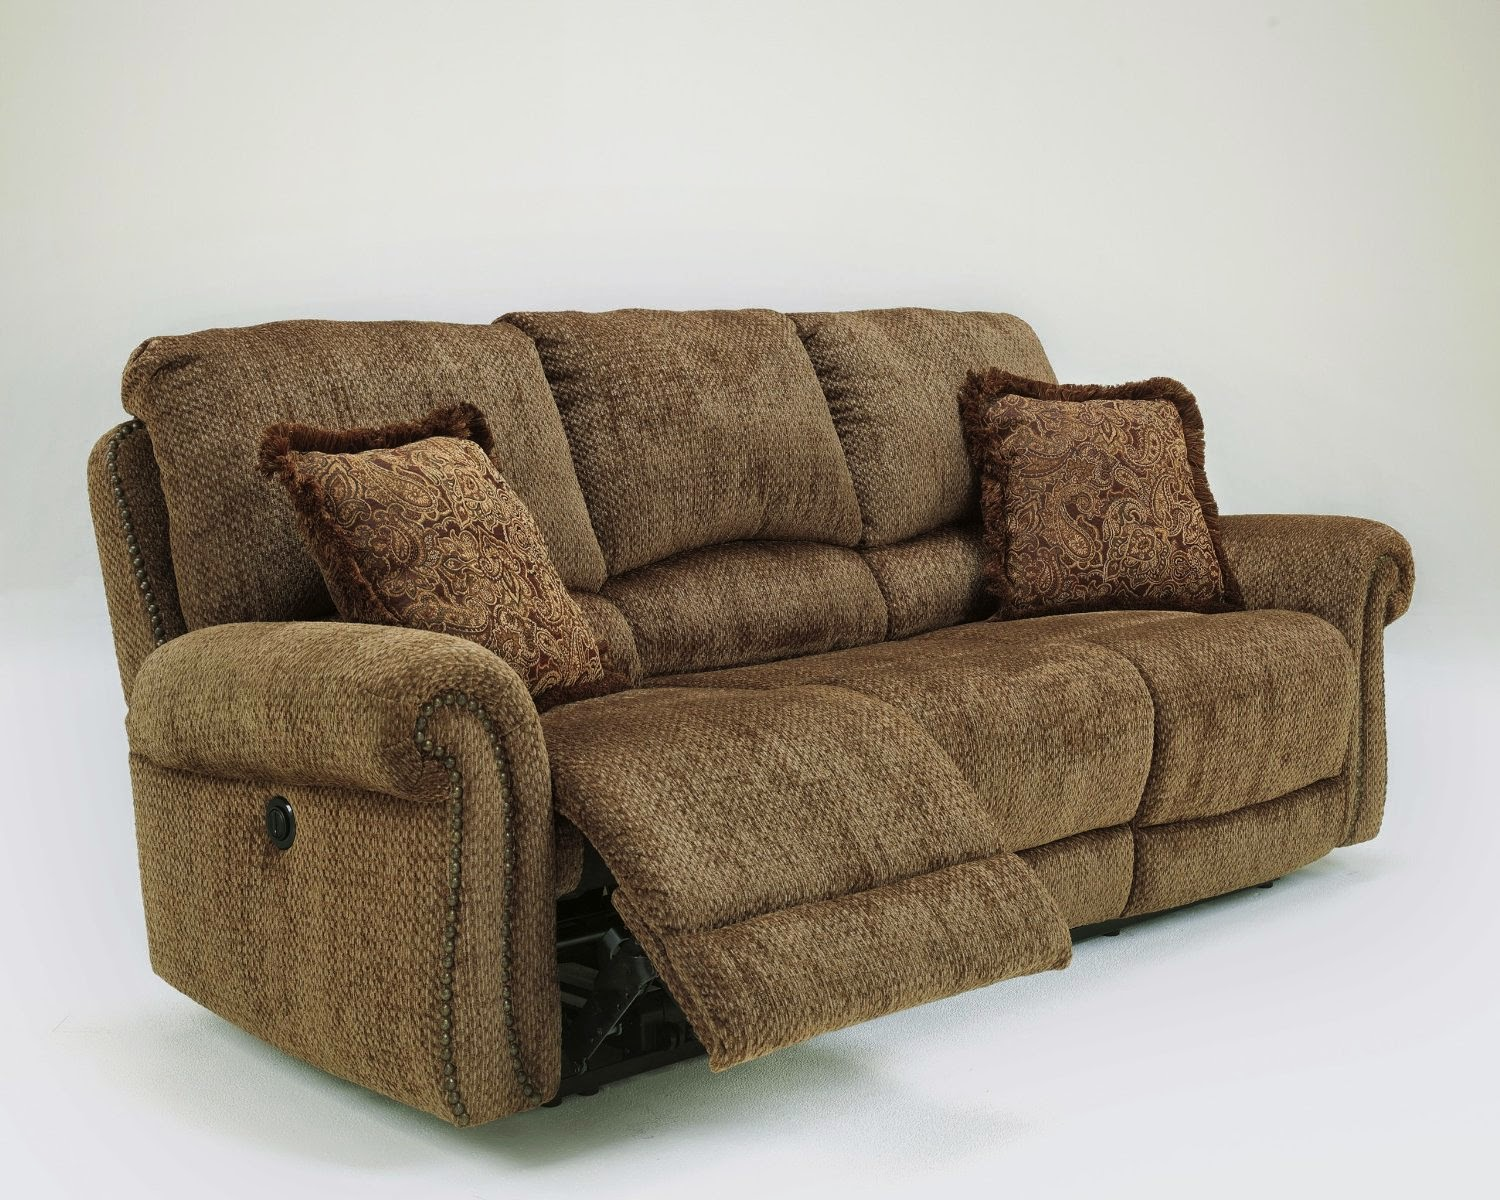 Chenille reclining sofa 2 piece reclining sofa set in chianti color chenille fabric thesofa Chenille sofa and loveseat